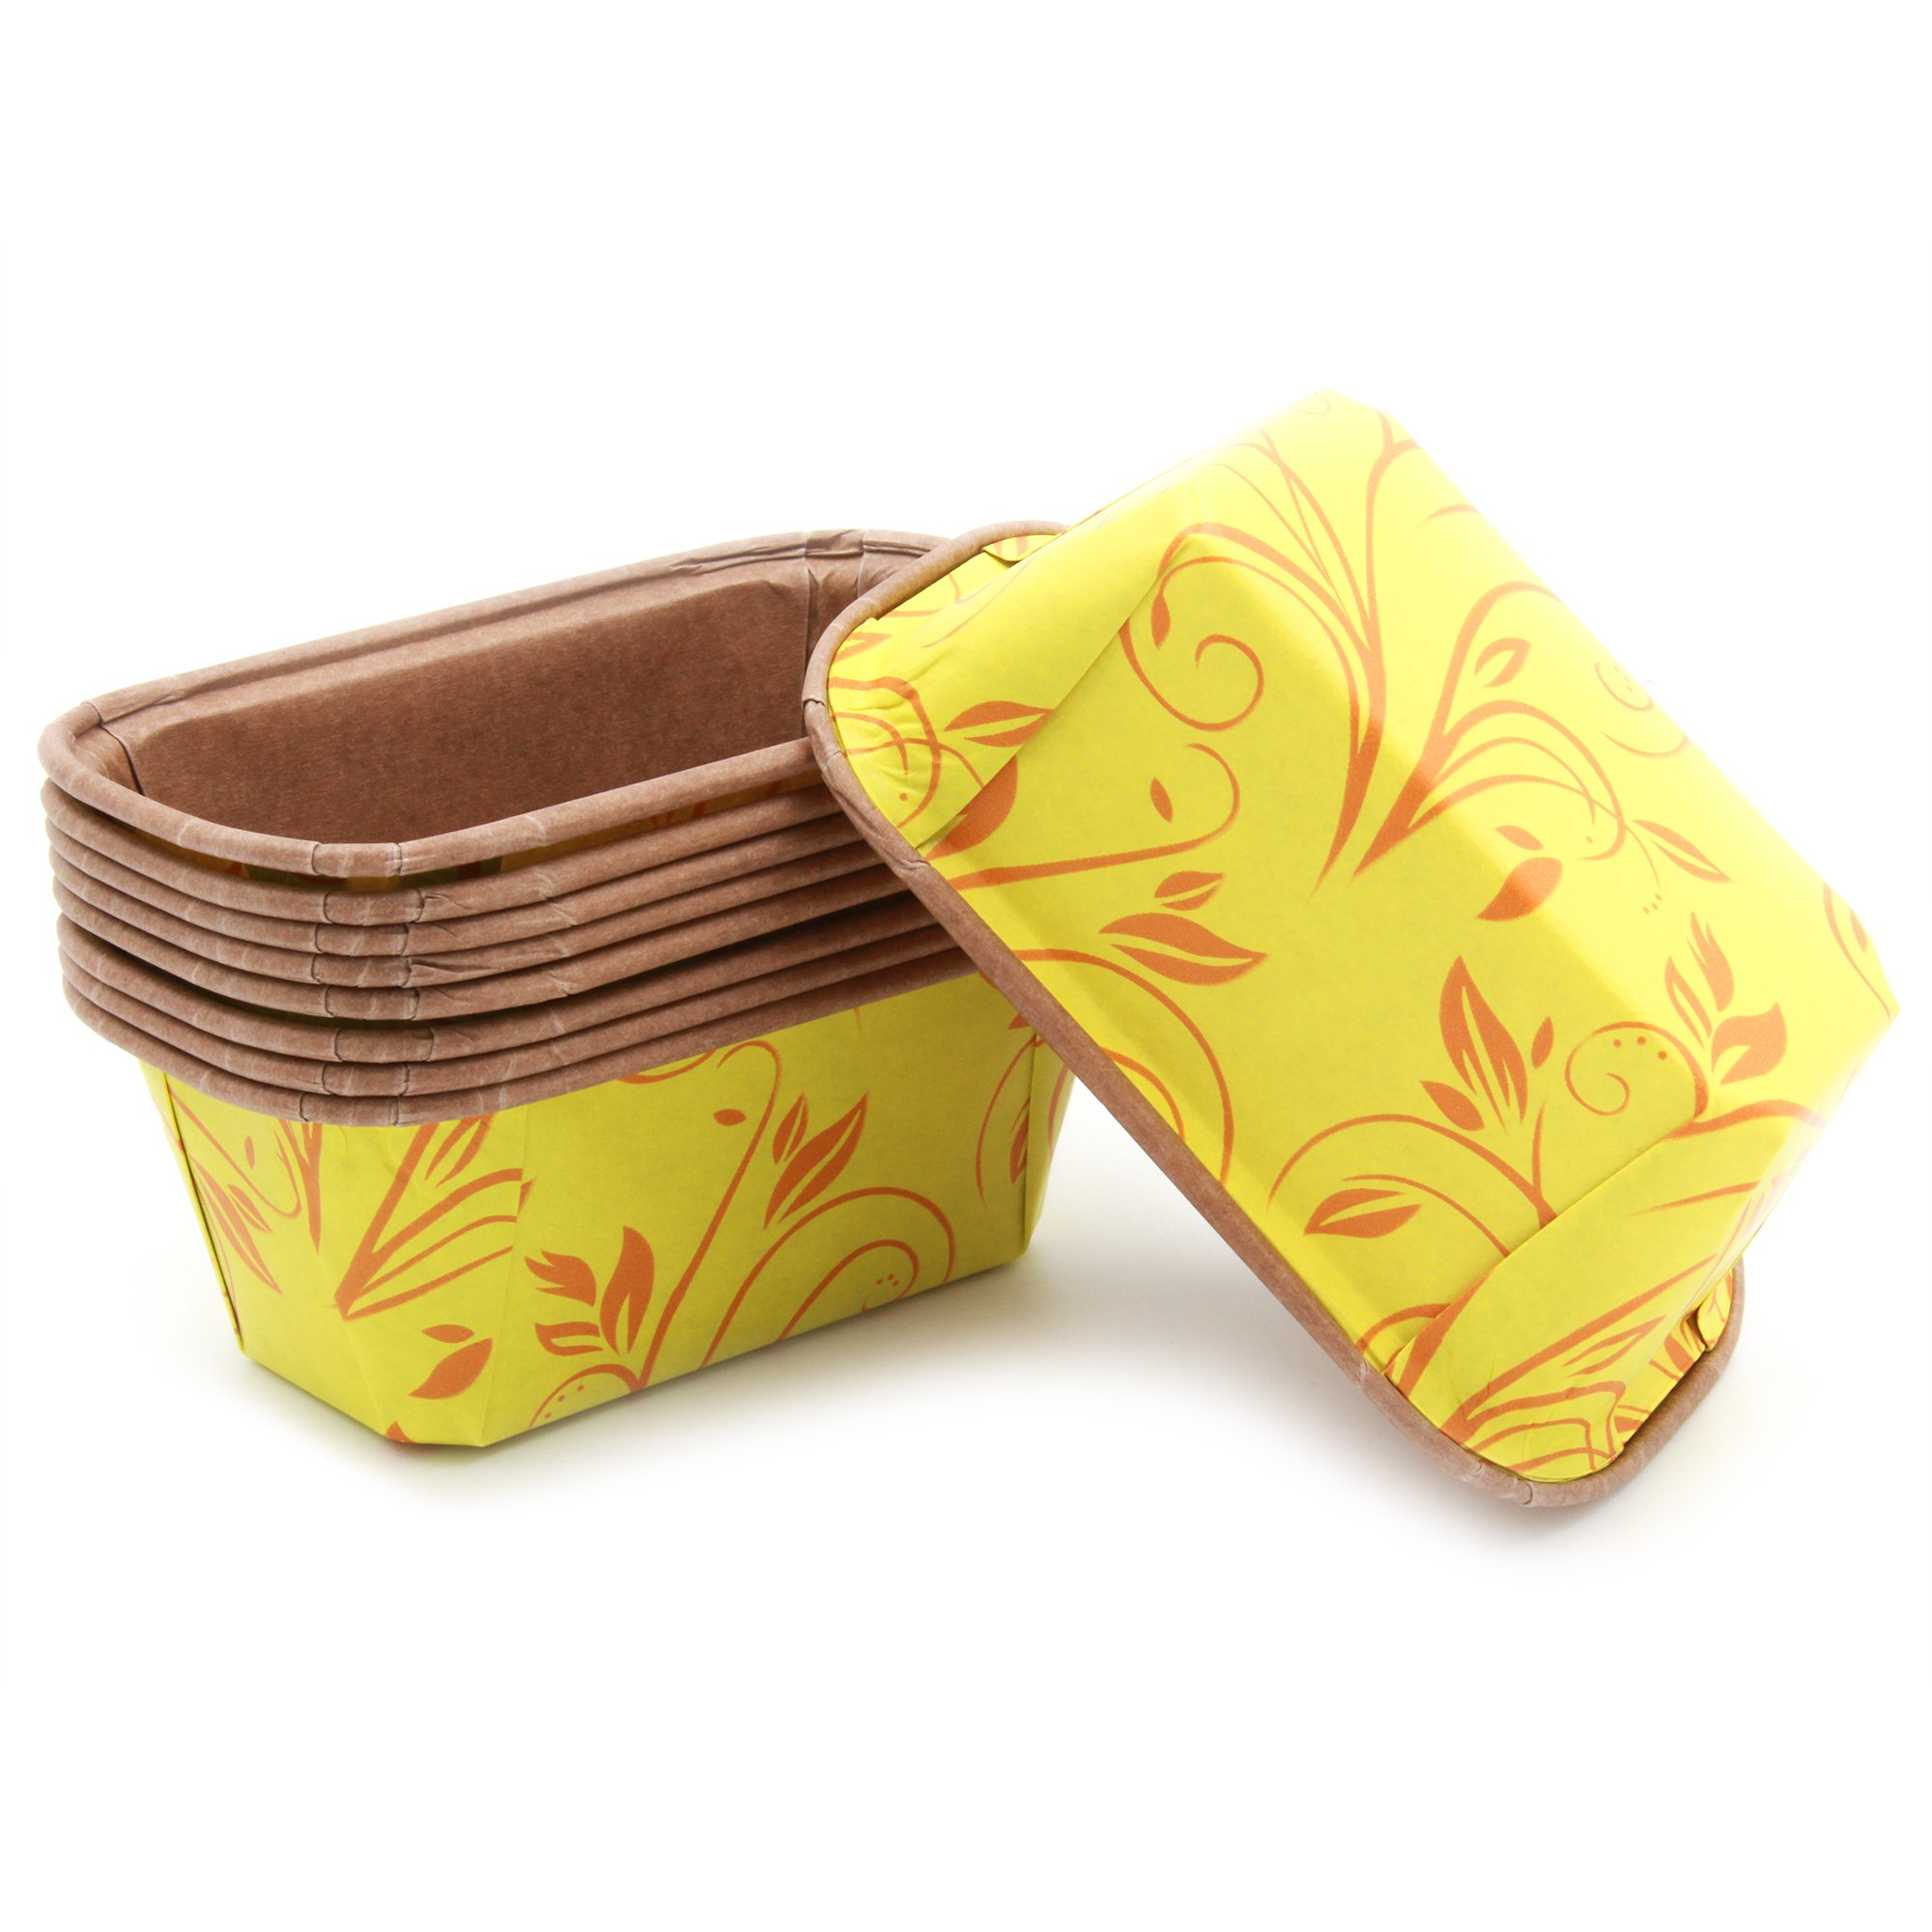 Premium Personal Mini Size Paper Baking Loaf Pan, Perfect for Chocolate Cake, Banana Bread, Yellow with Red Print, Set of 75 - by EcoBake by Ecobake